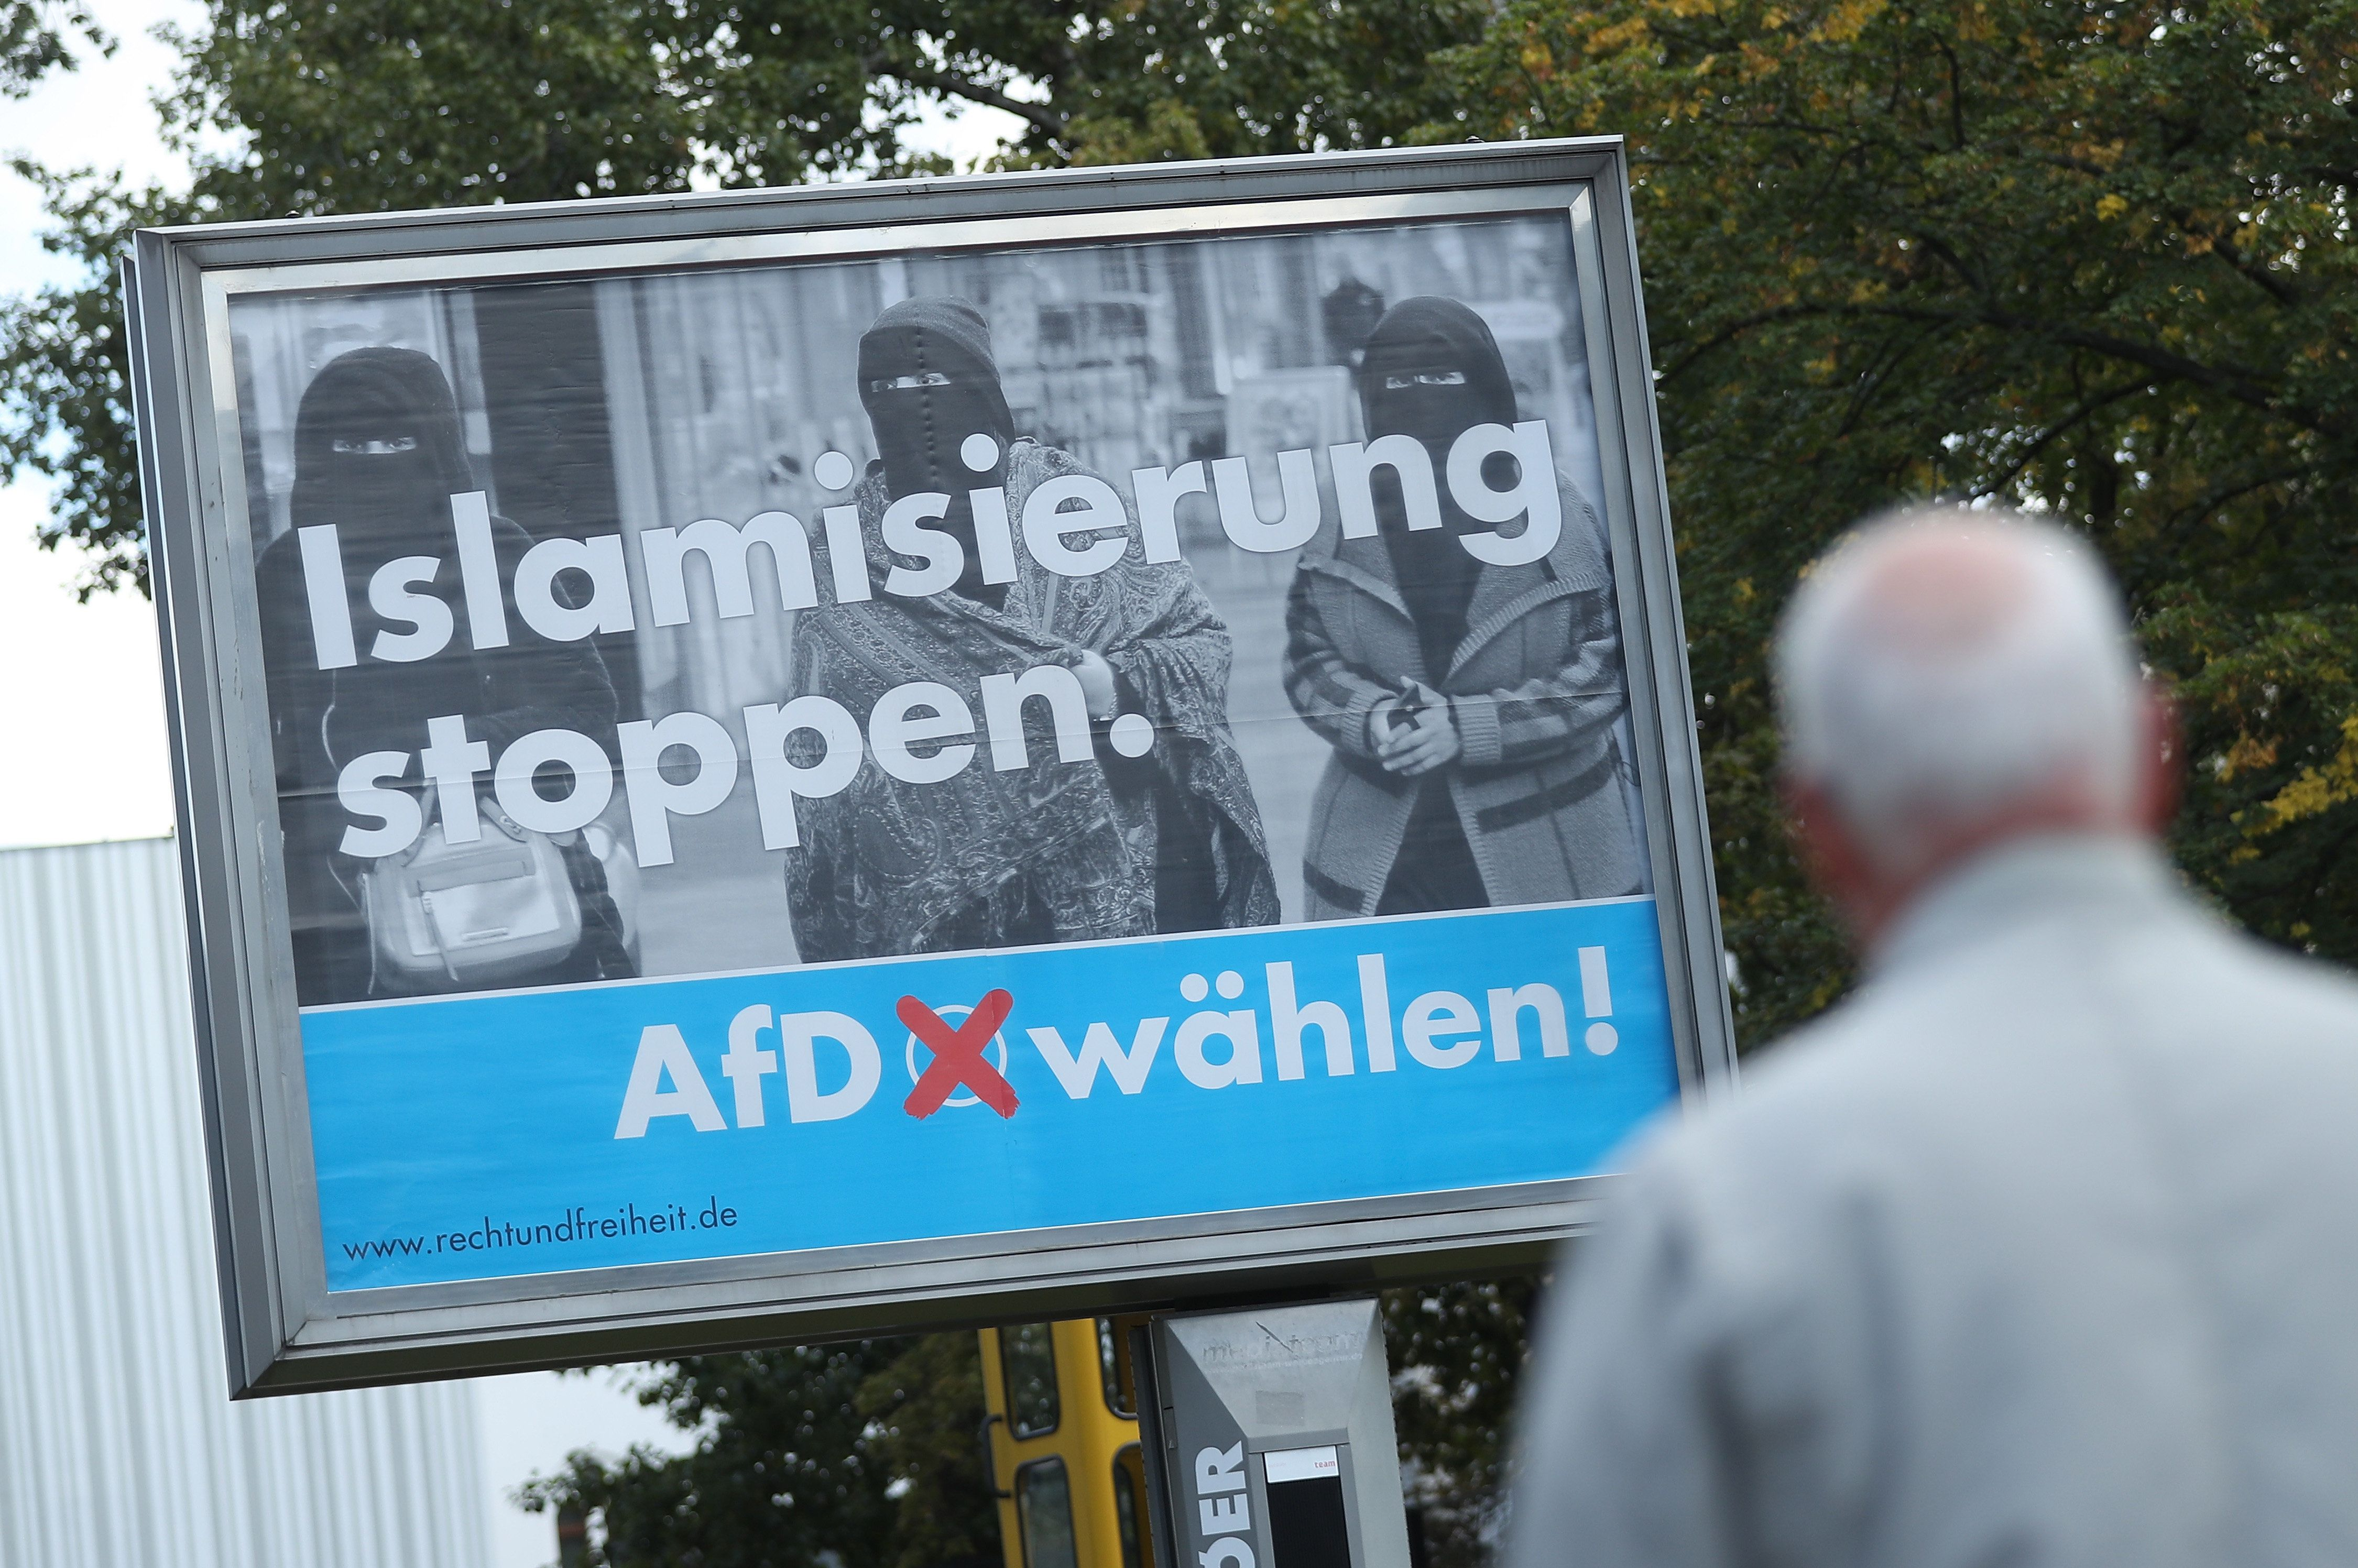 Germany's Right-wing AfD Set to Become Third Biggest Party, Polls Suggest